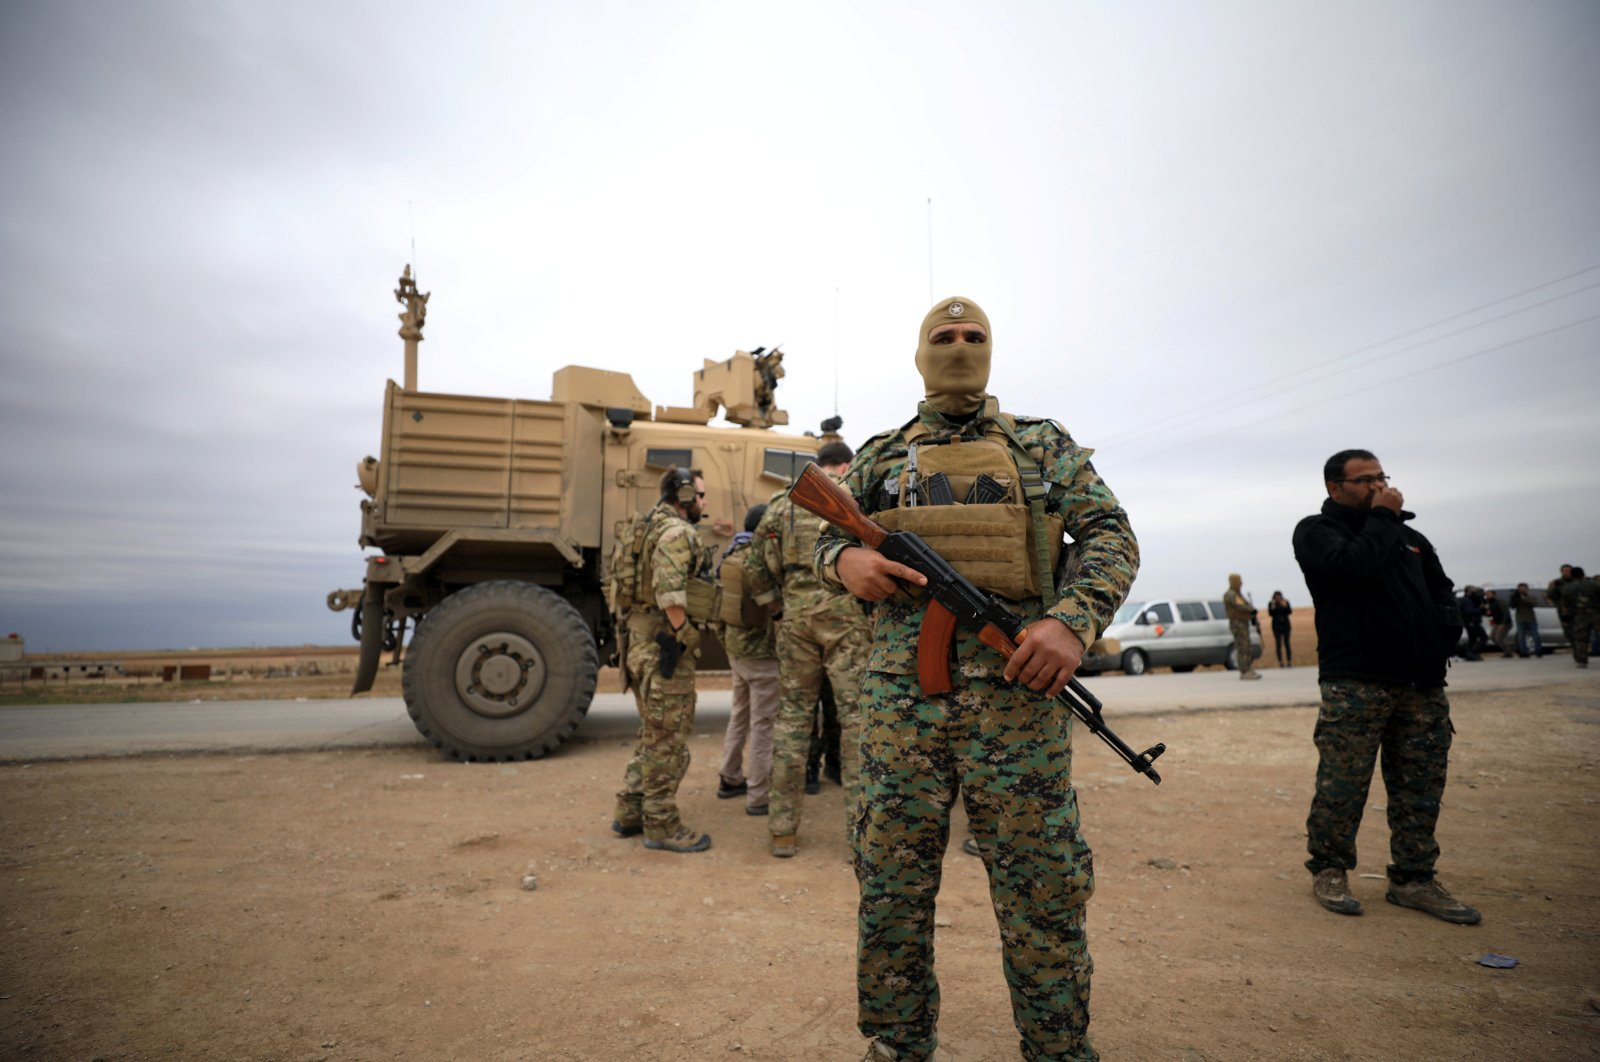 YPG/PKK terrorists and U.S. troops are seen during a patrol near the Turkish border in Al-Hasakah, Syria, Nov. 4, 2018. (Reuters Photo)